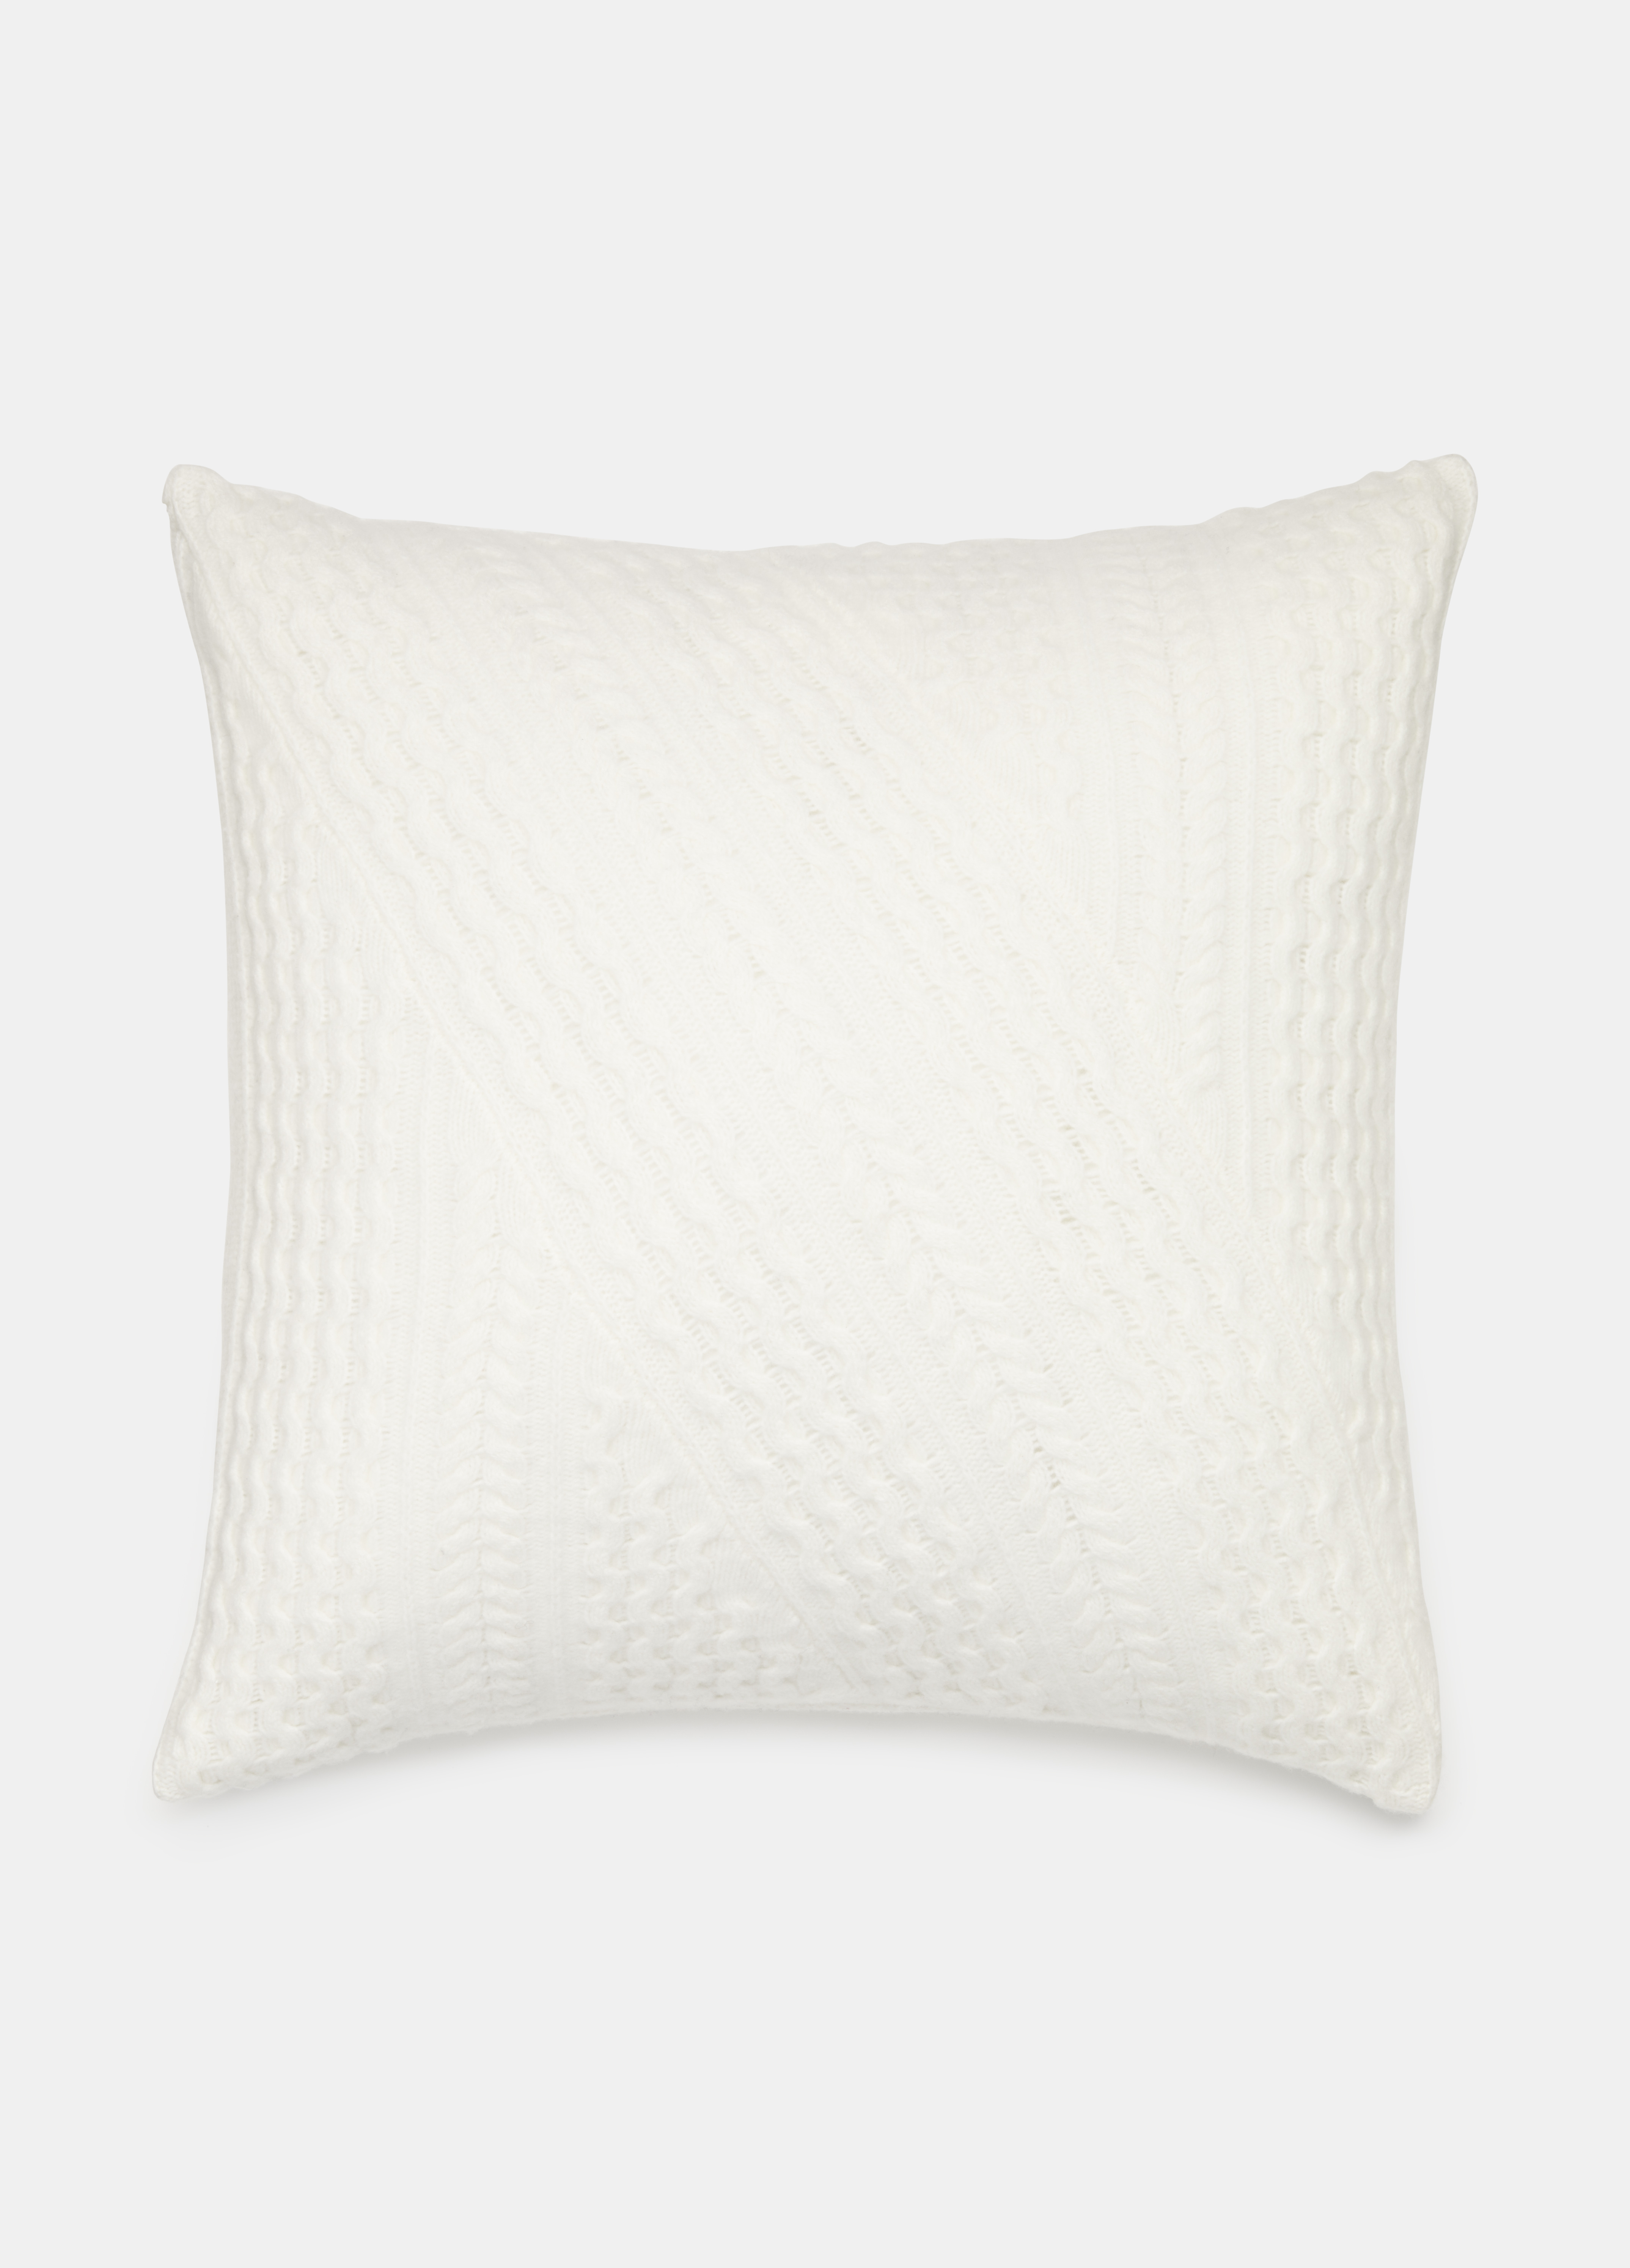 Cable-Knit Merino Pillow